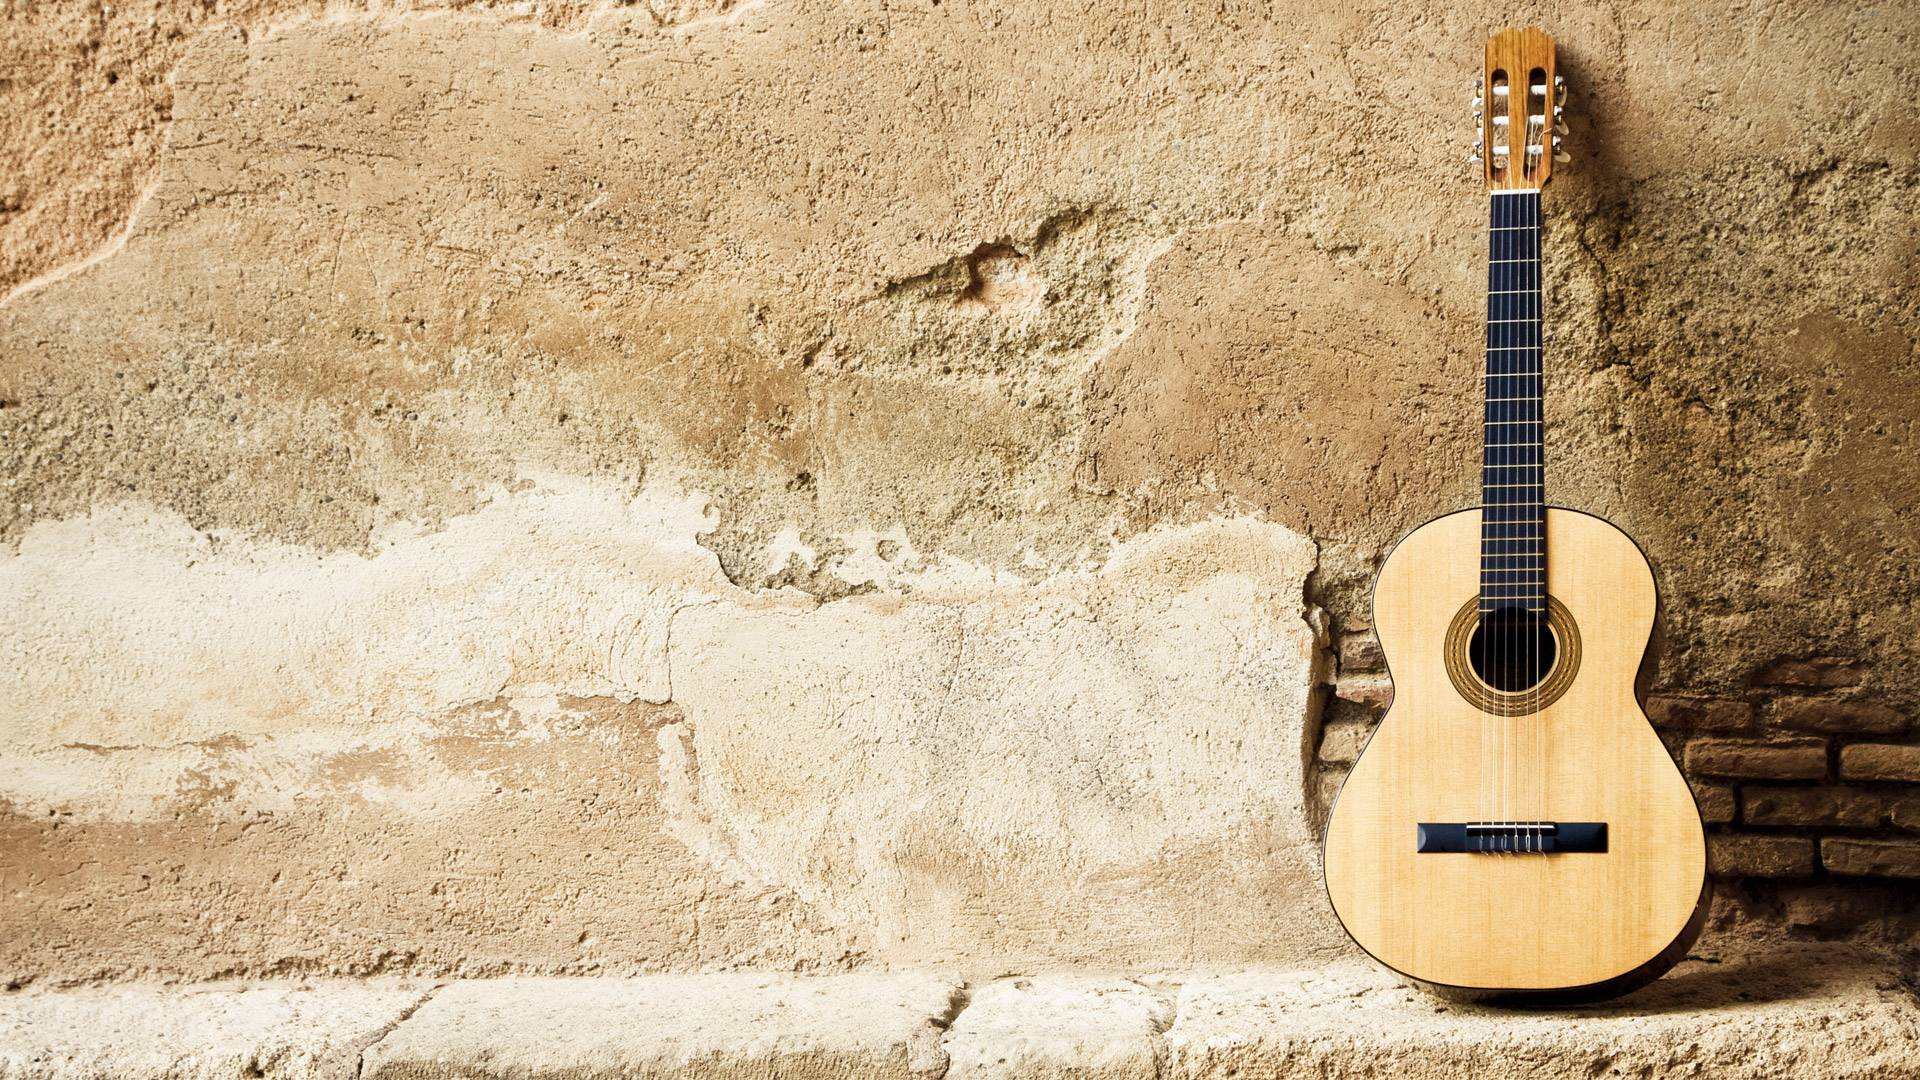 Love Wallpaper With Guitar : Acoustic Guitar Wallpapers - Wallpaper cave